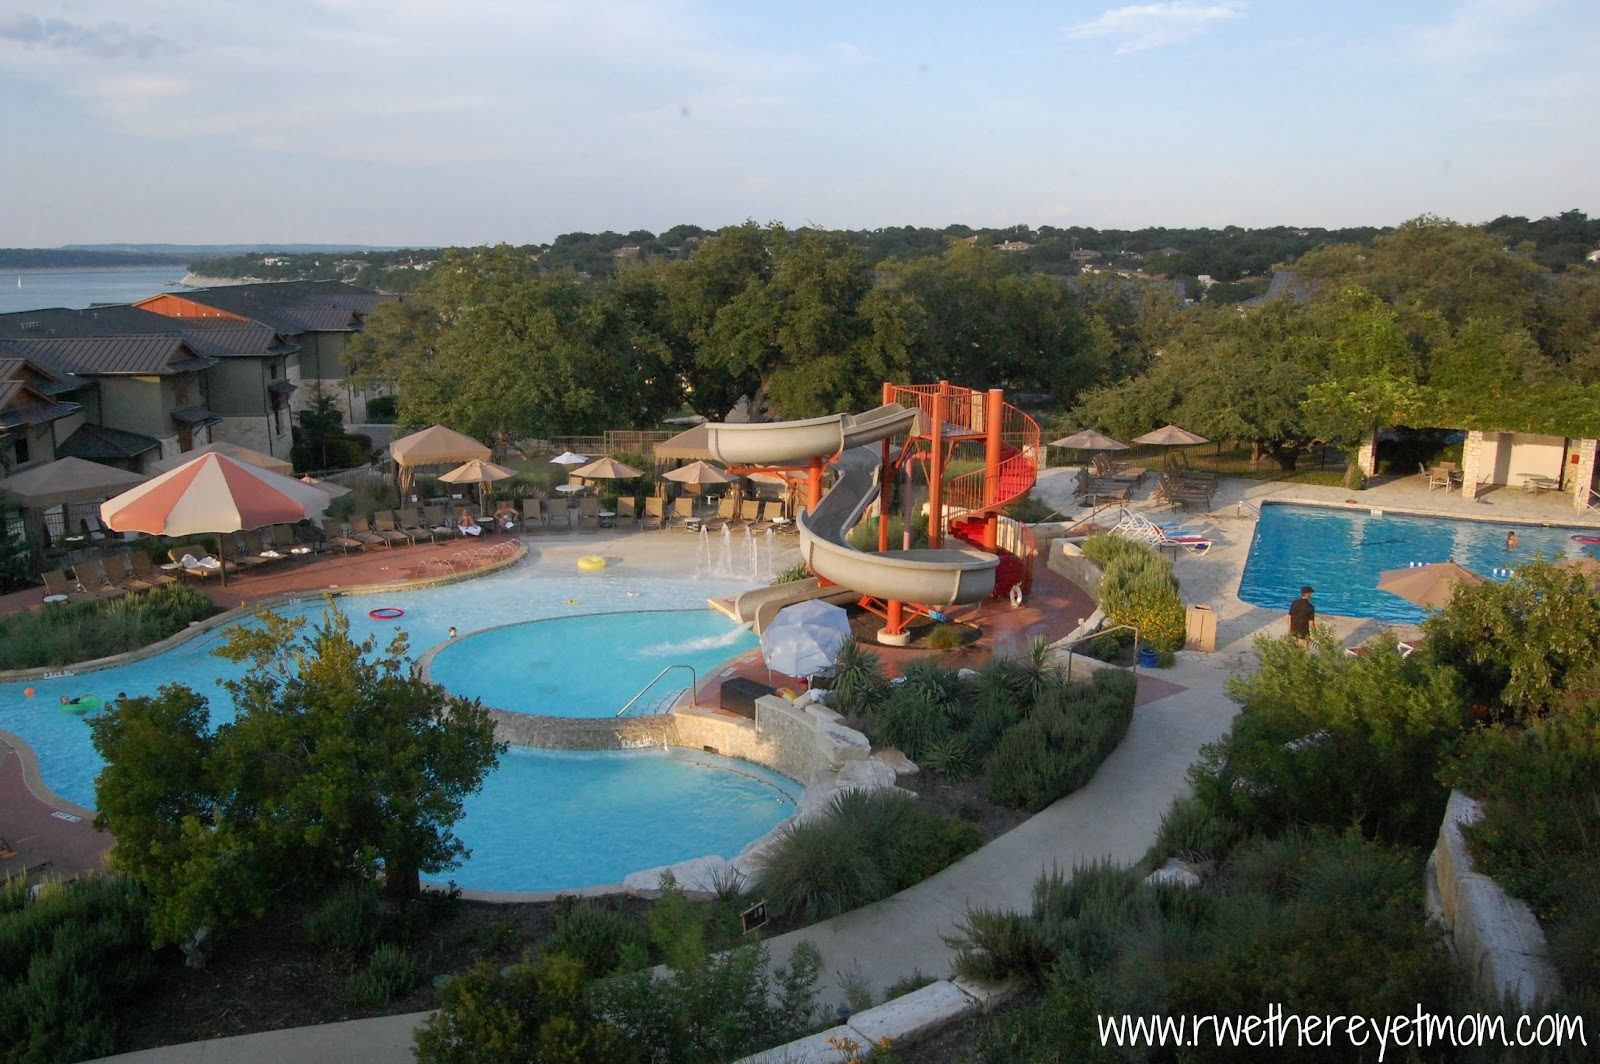 Lakeway resort spa austin texas r we there yet mom for Spas and resorts in texas